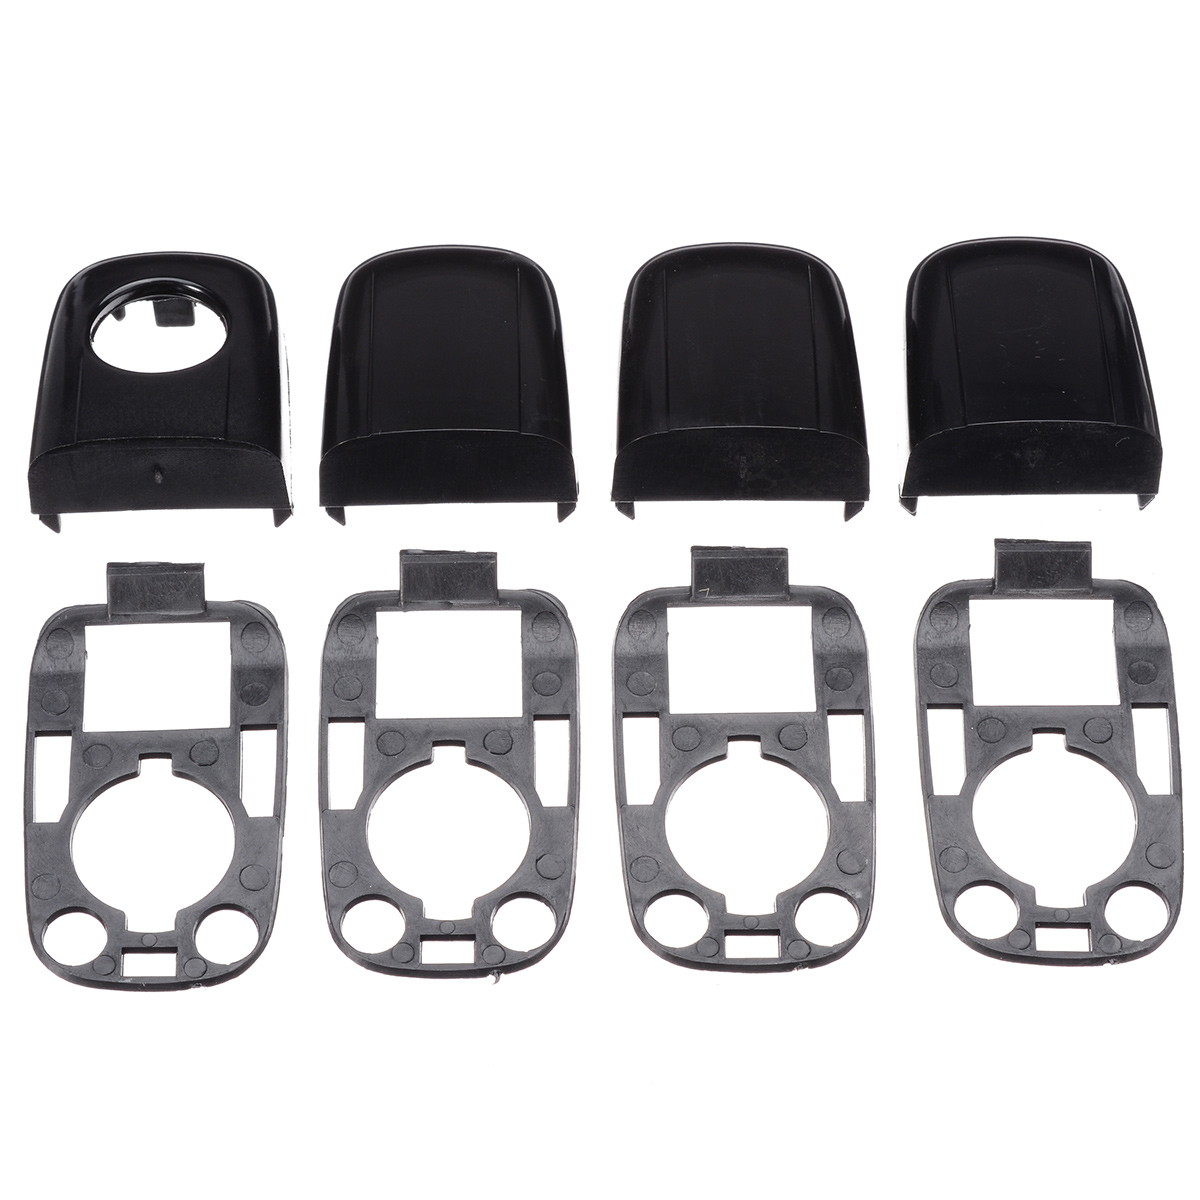 8pcs/set Left Right Car <font><b>Door</b></font> <font><b>Handle</b></font> Cover End Cap Protective Lock Cover Accessories For <font><b>Peugeot</b></font> 307/Citroen C2 C3 image